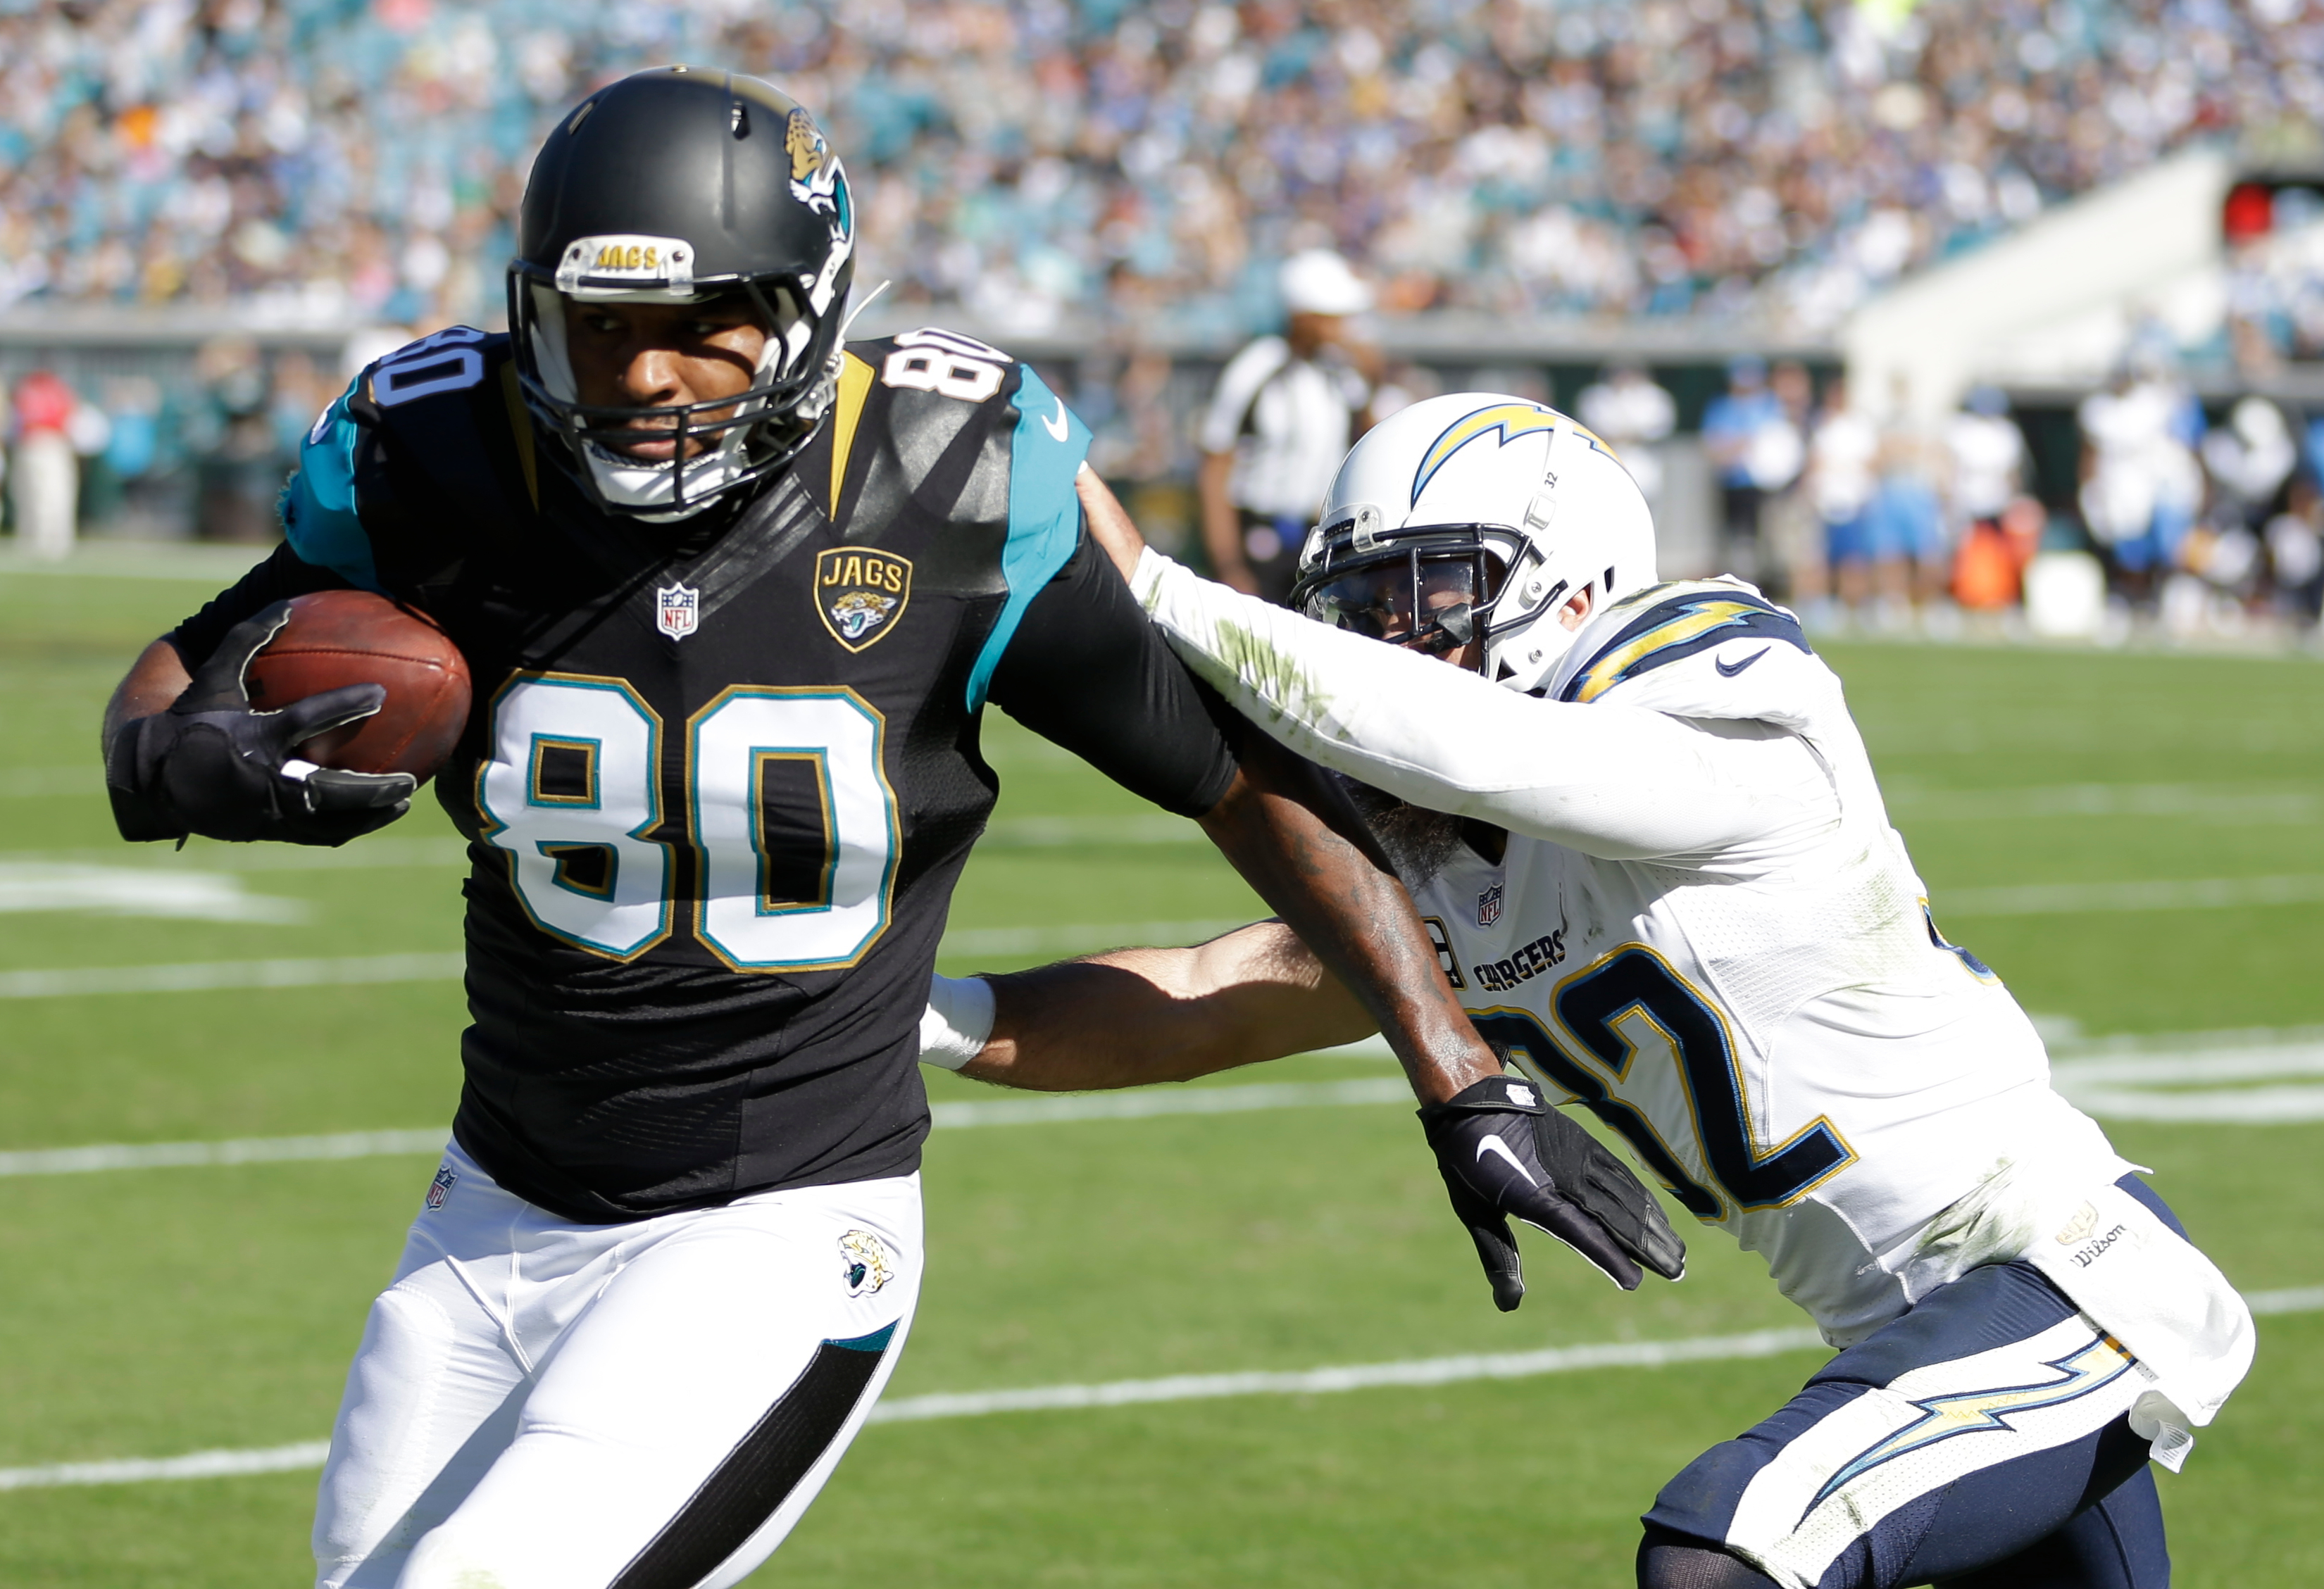 FILE - In this Nov. 29, 2015, file photo, Jacksonville Jaguars tight end Julius Thomas (80) is pushed out of bounds by San Diego Chargers free safety Eric Weddle (32) after a reception during the first half of an NFL football game in Jacksonville, Fla. Th